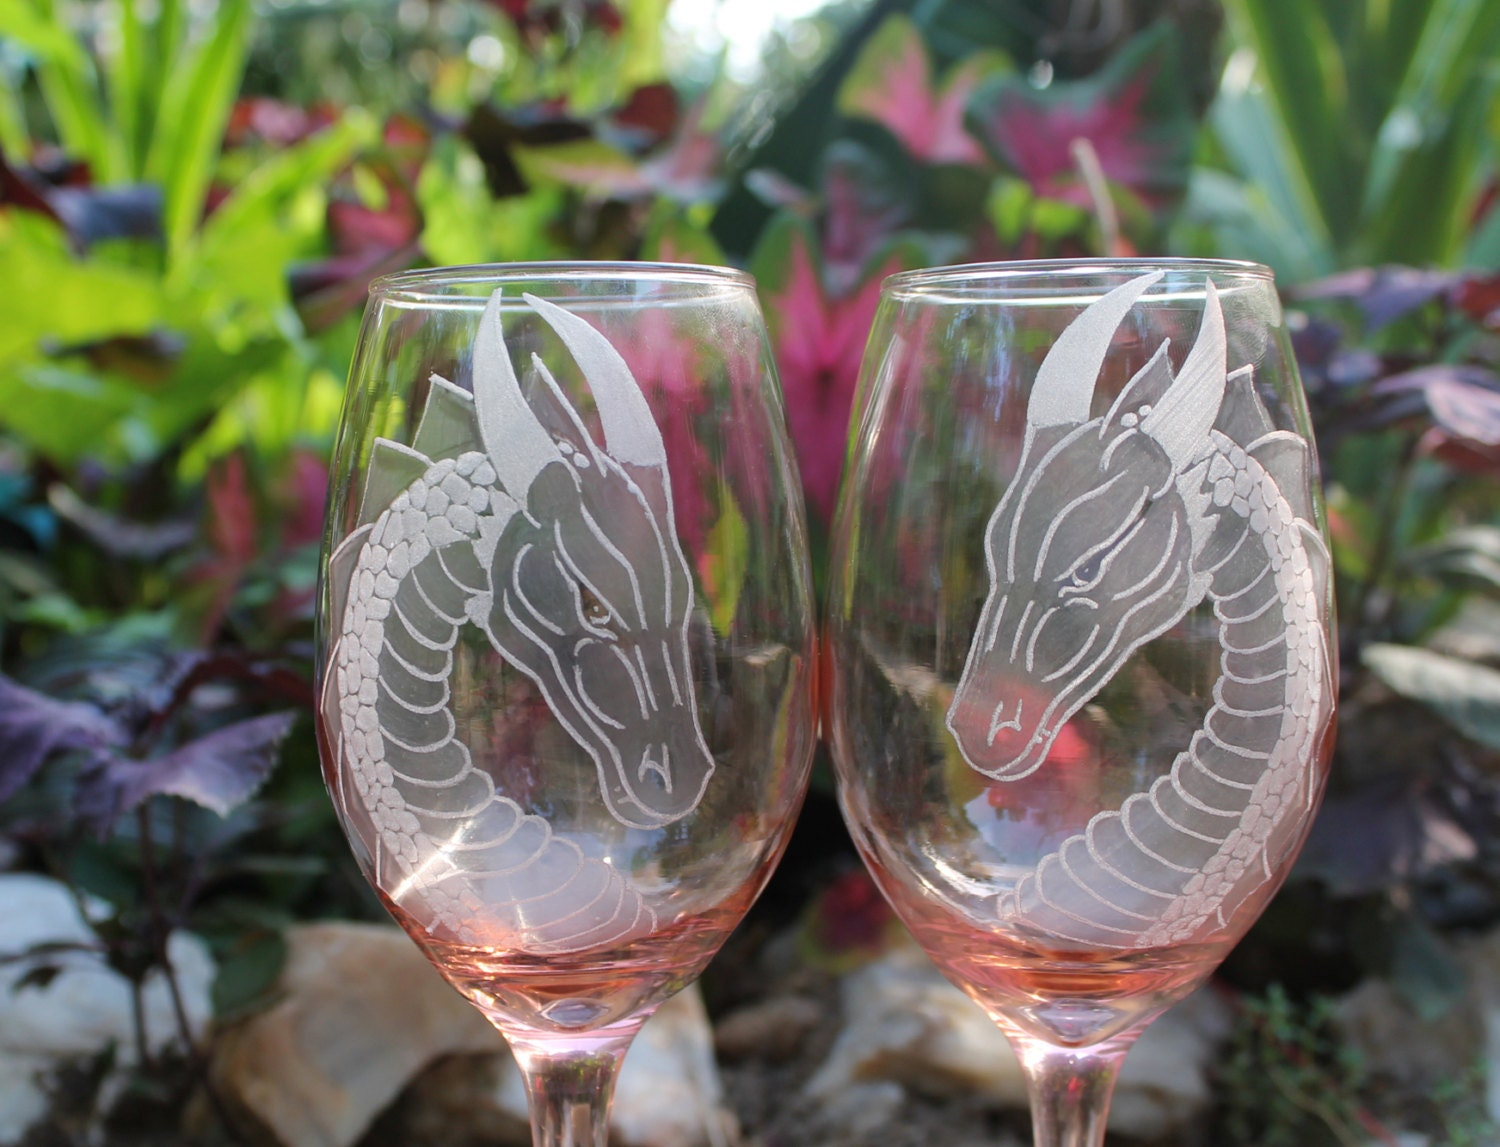 Dragon Wine Glasses Hand Engraved Wine Glasses Peachy Pink